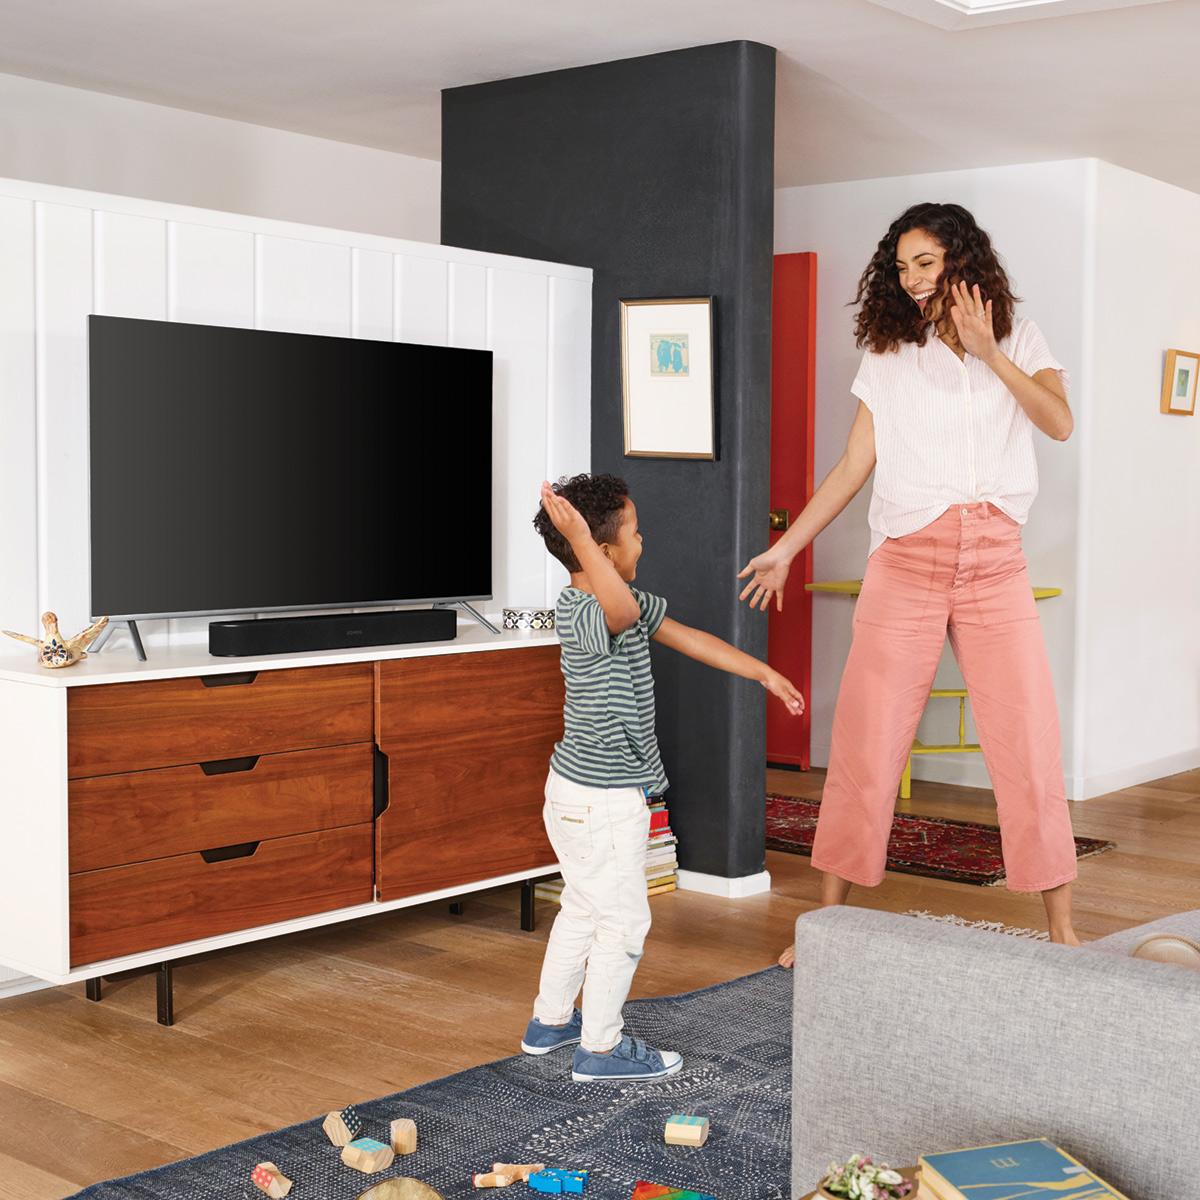 Sonos-Beam-Compact-Smart-Sound-Bar-with-Voice-Control thumbnail 23